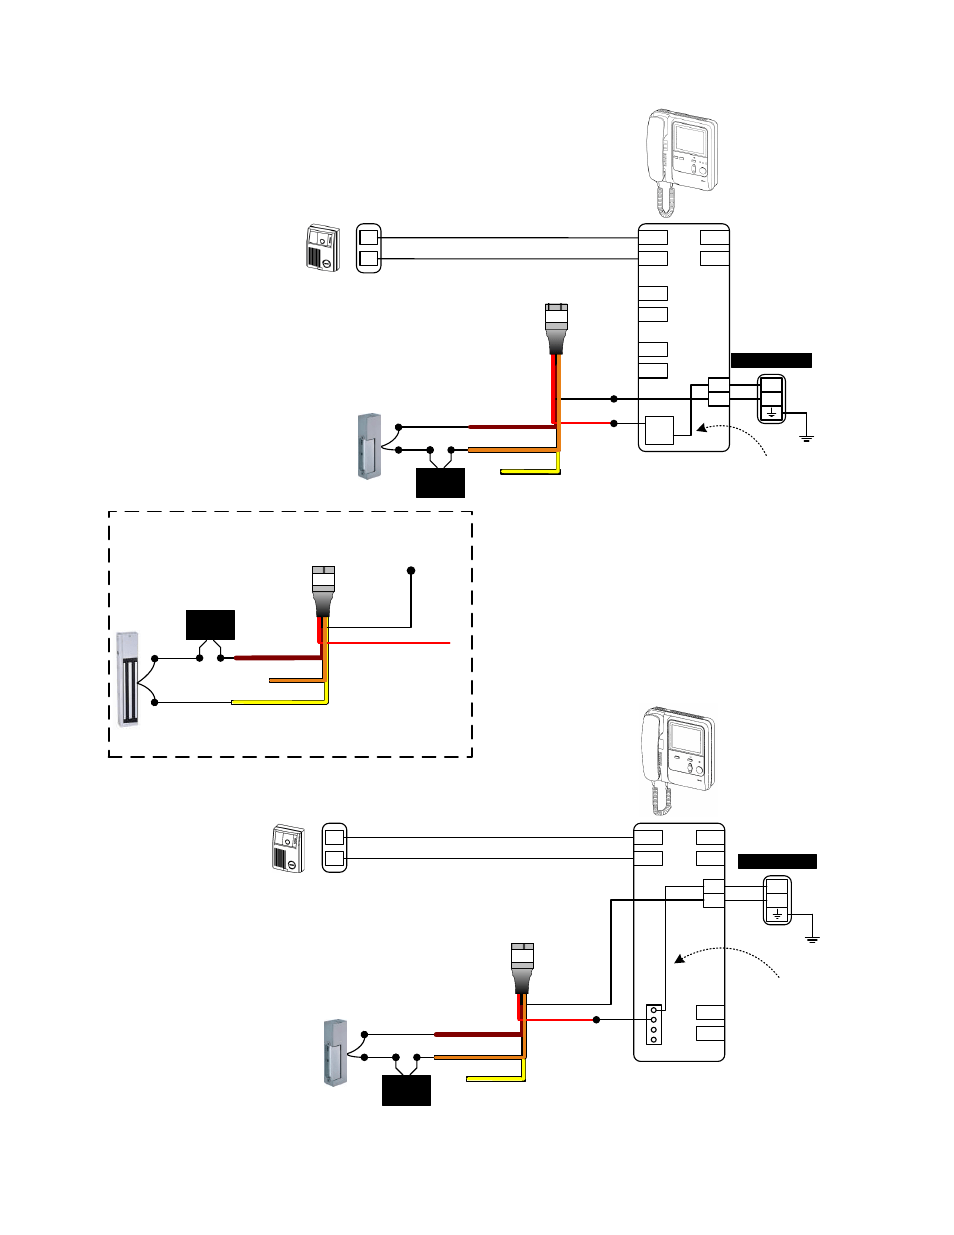 aiphone door release relay module ry 24l page2?resize\=665%2C861 wiring diagram hid edge solo 5 pin relay wiring diagram, led von duprin wiring diagram at mifinder.co